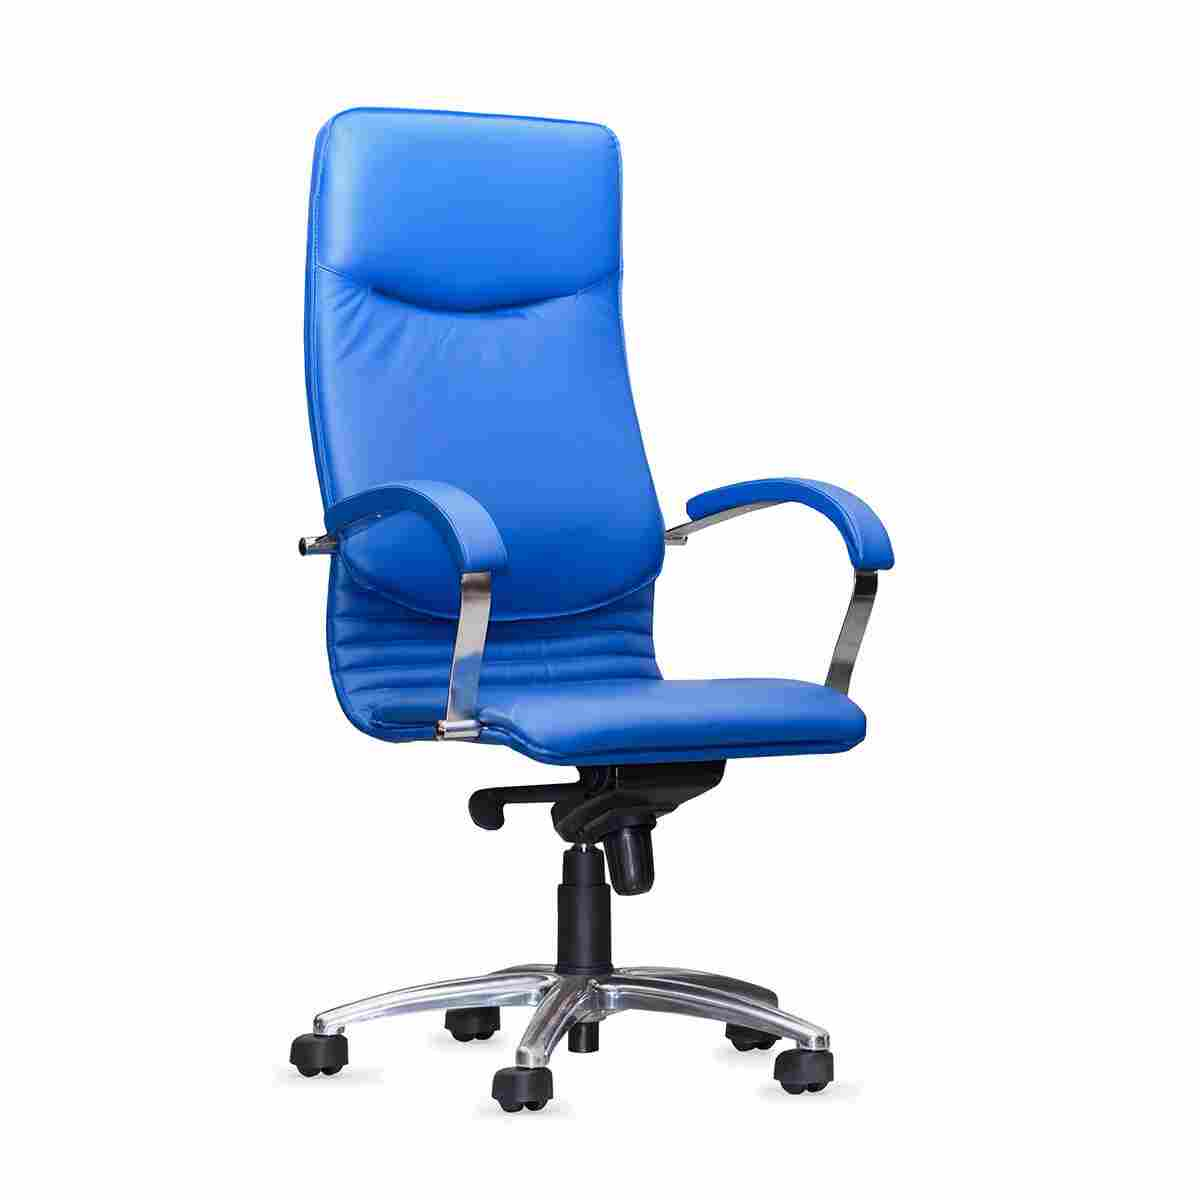 blue leather office chair hanging with base two rivers law group p c 48 00